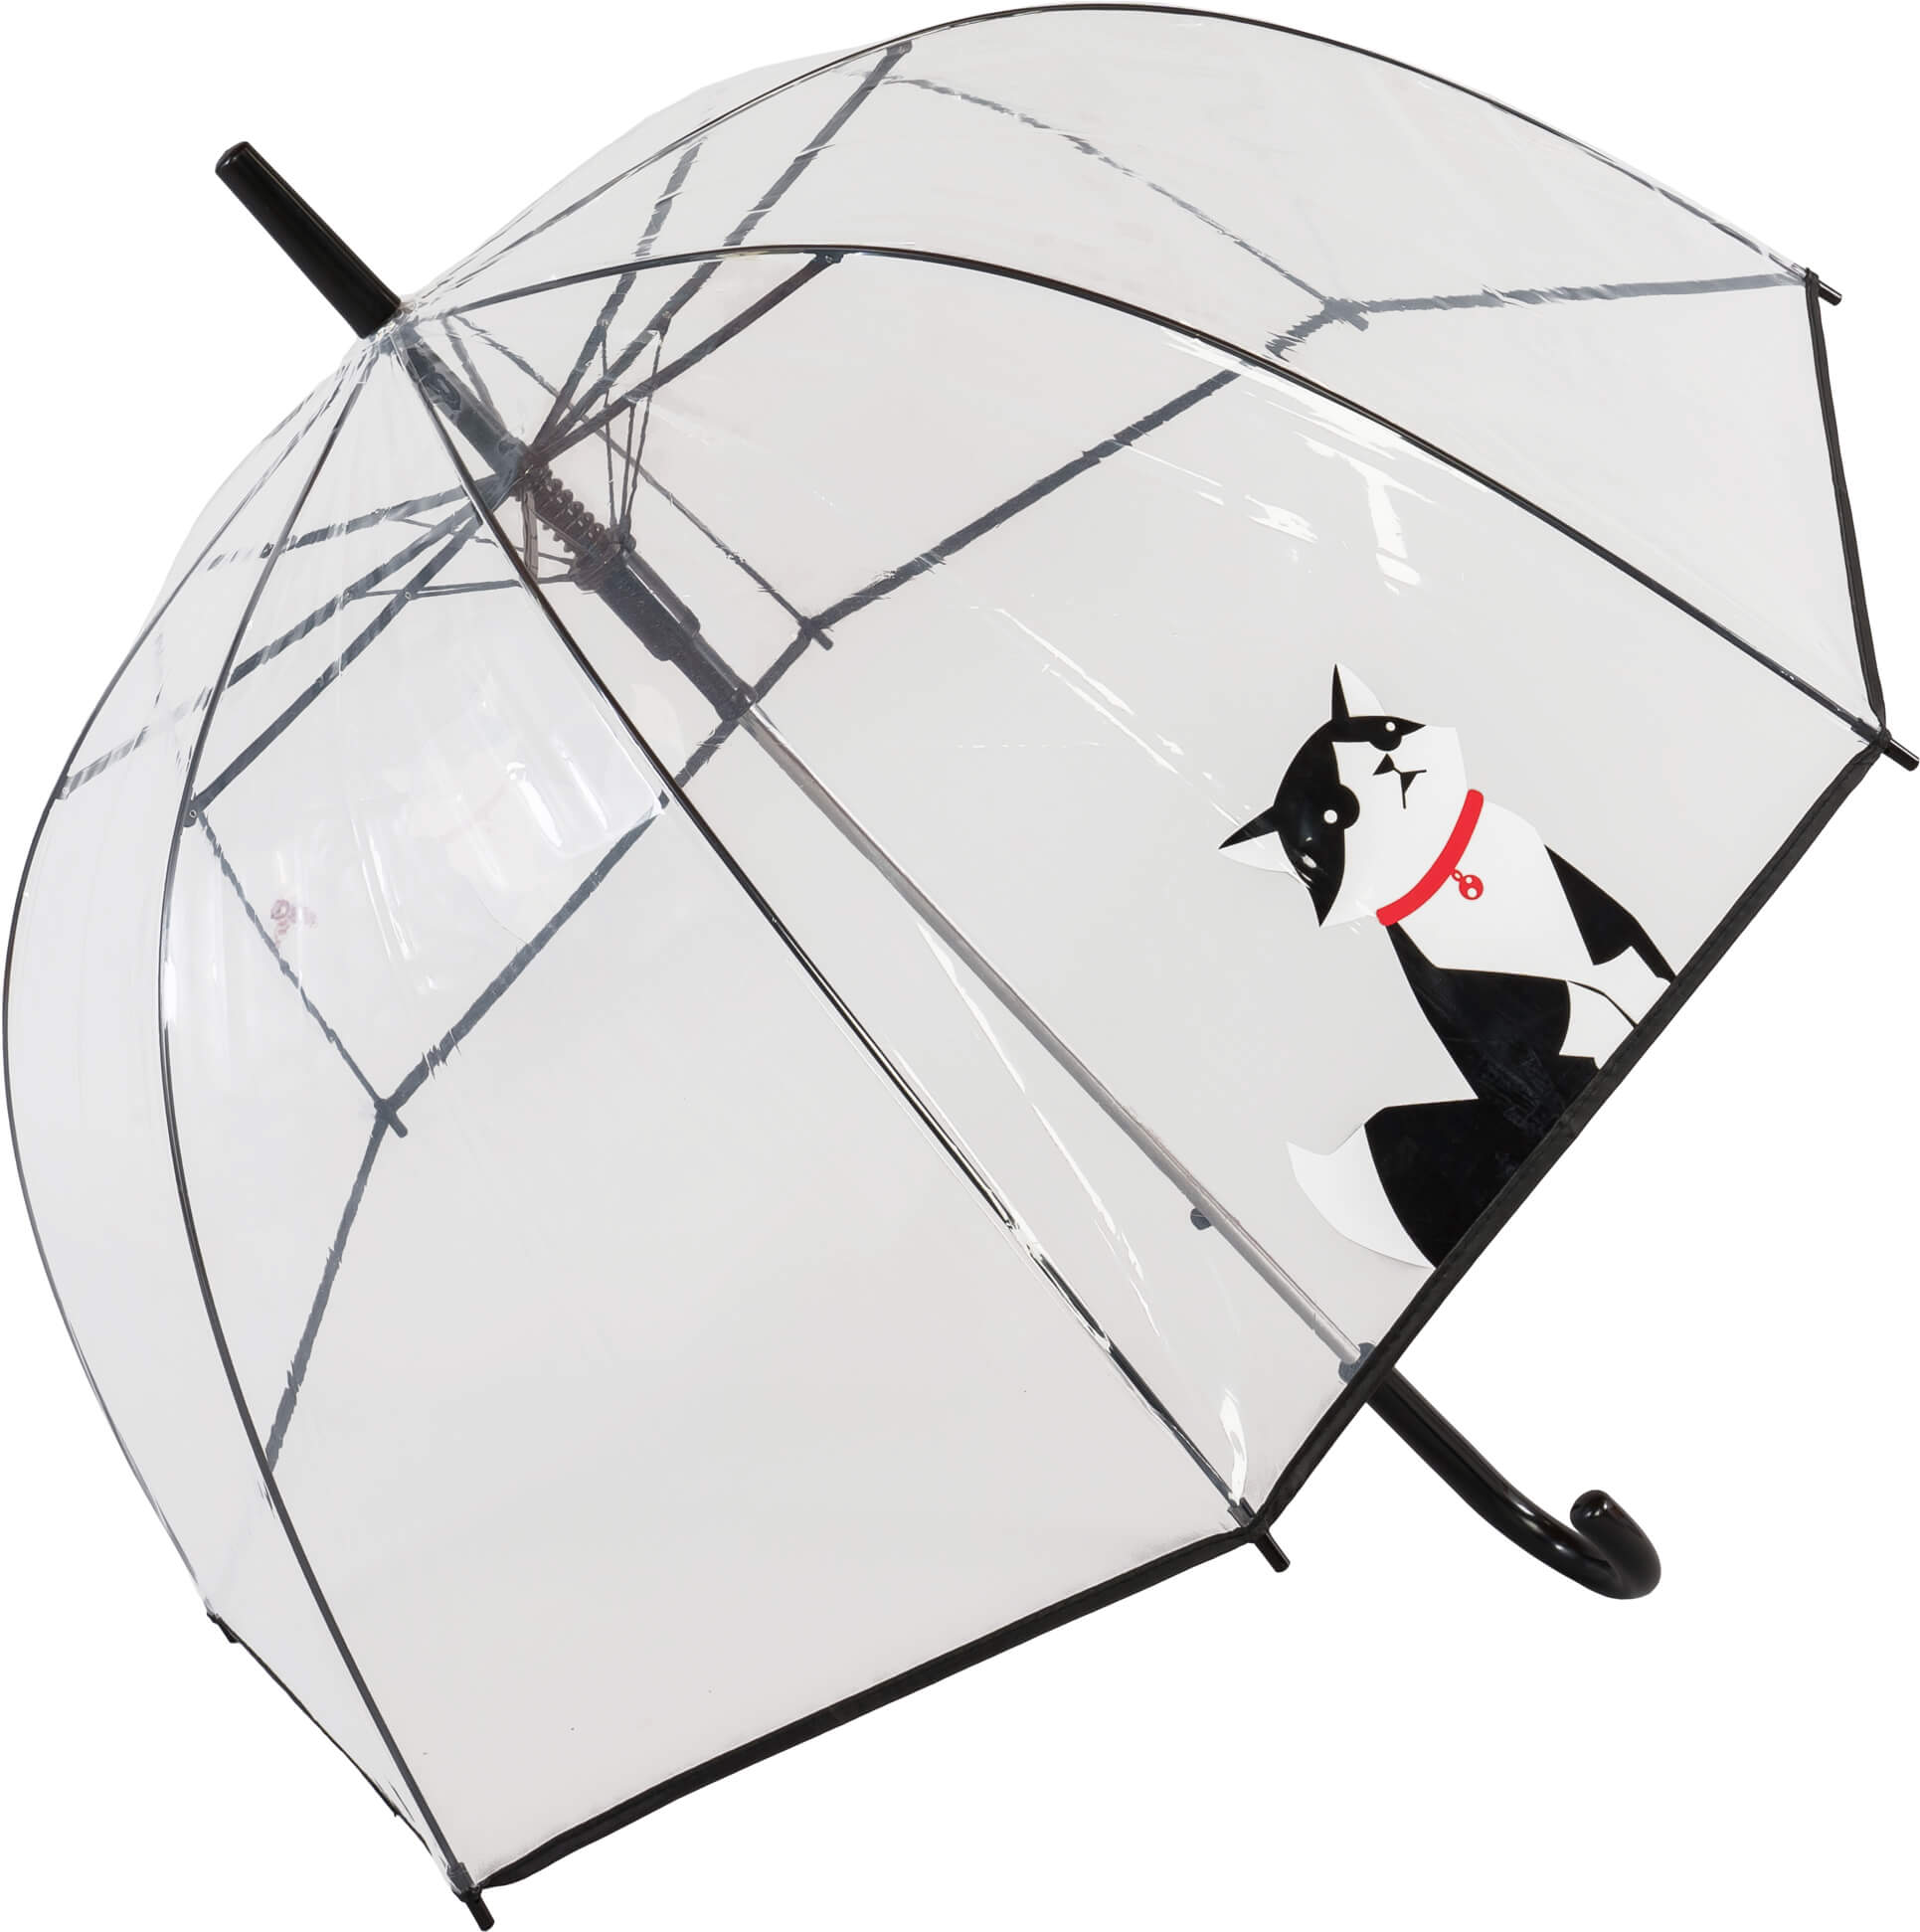 Auto Black Cat Clear Dome Umbrella (18016)